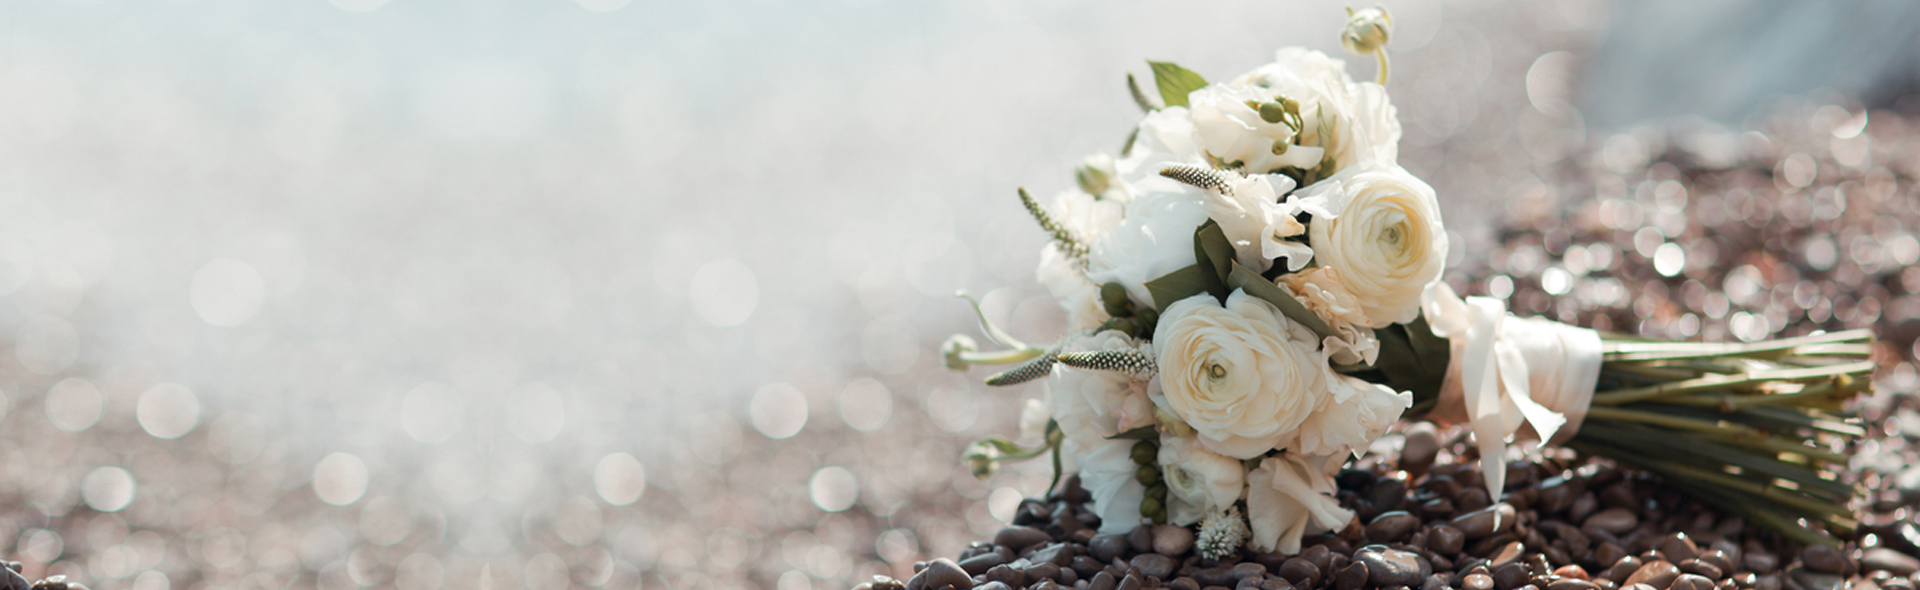 Neston flowers order flowers and plants online from neston flowers funeral flowers izmirmasajfo